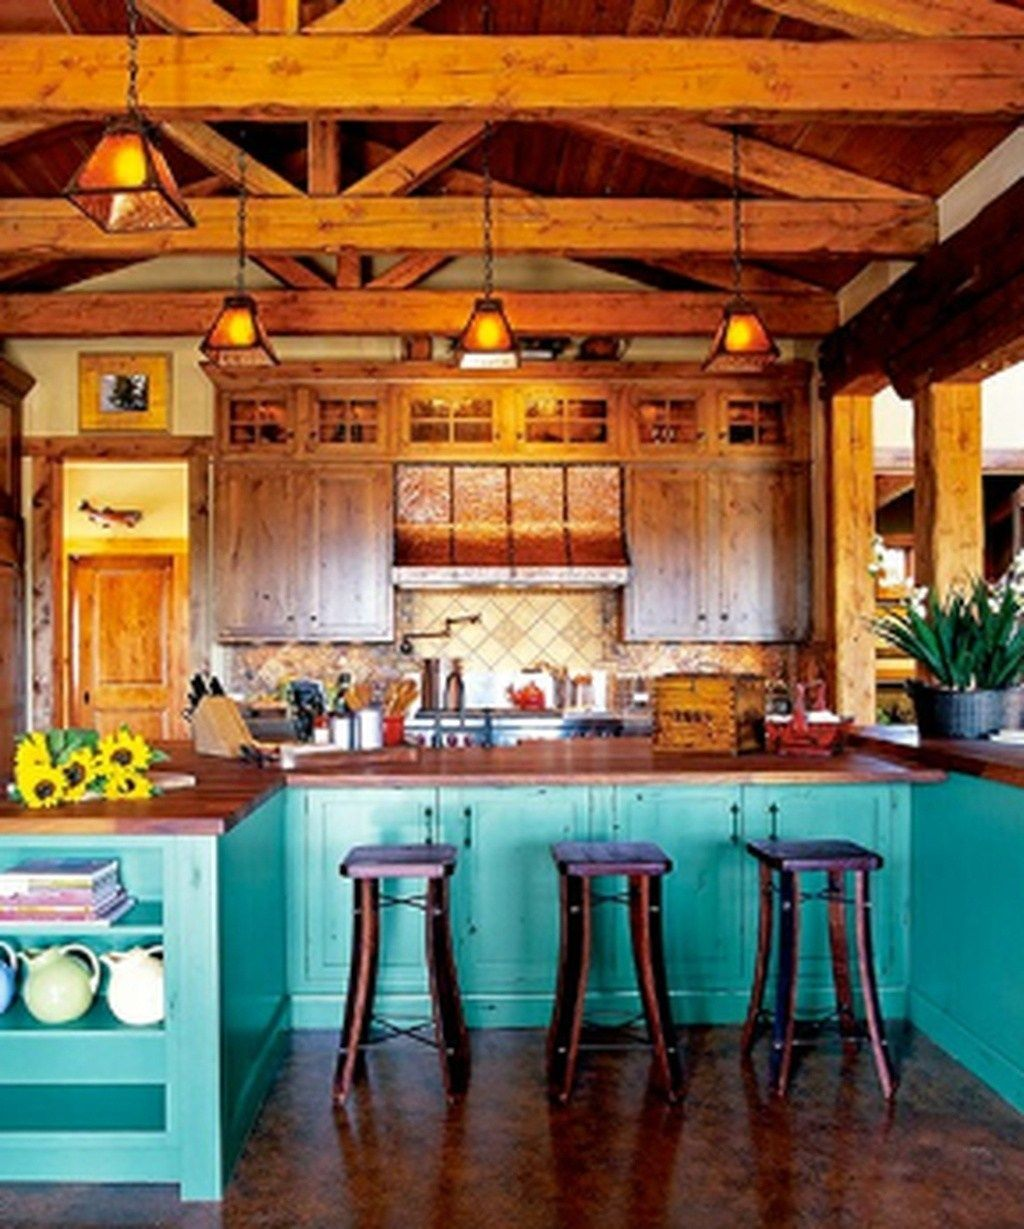 Hawaiian Home Design Ideas: 44 Amazing Hawaiian Kitchen Decor Ideas In 2020